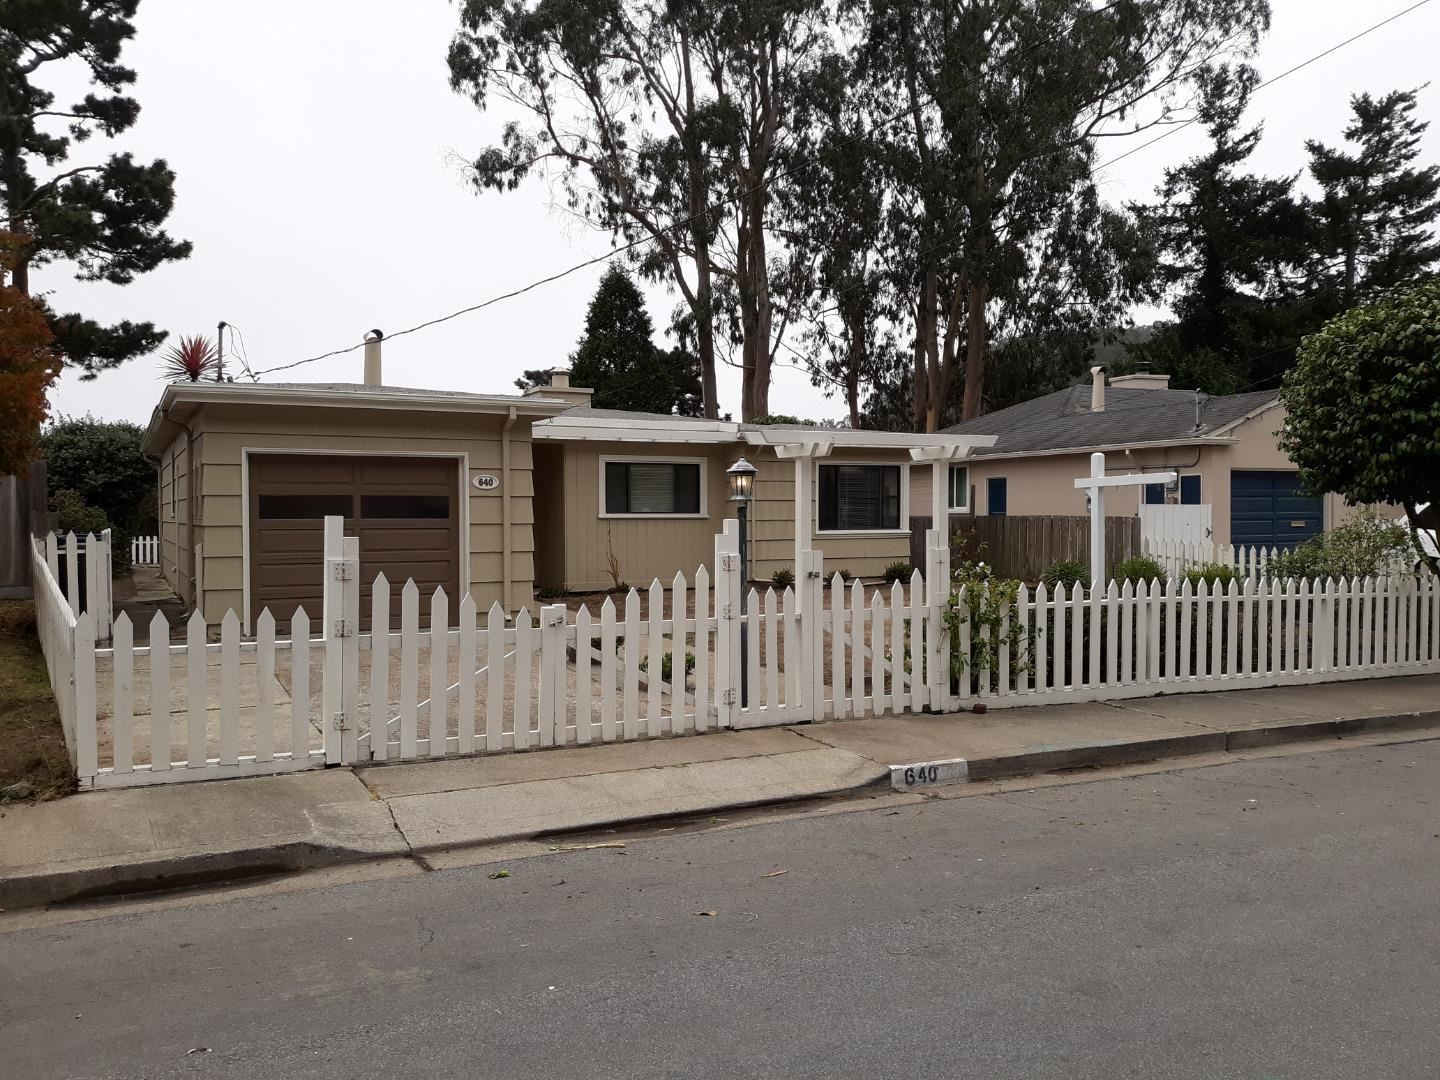 Photo for 640 Larchmont DR, DALY CITY, CA 94015 (MLS # ML81775074)